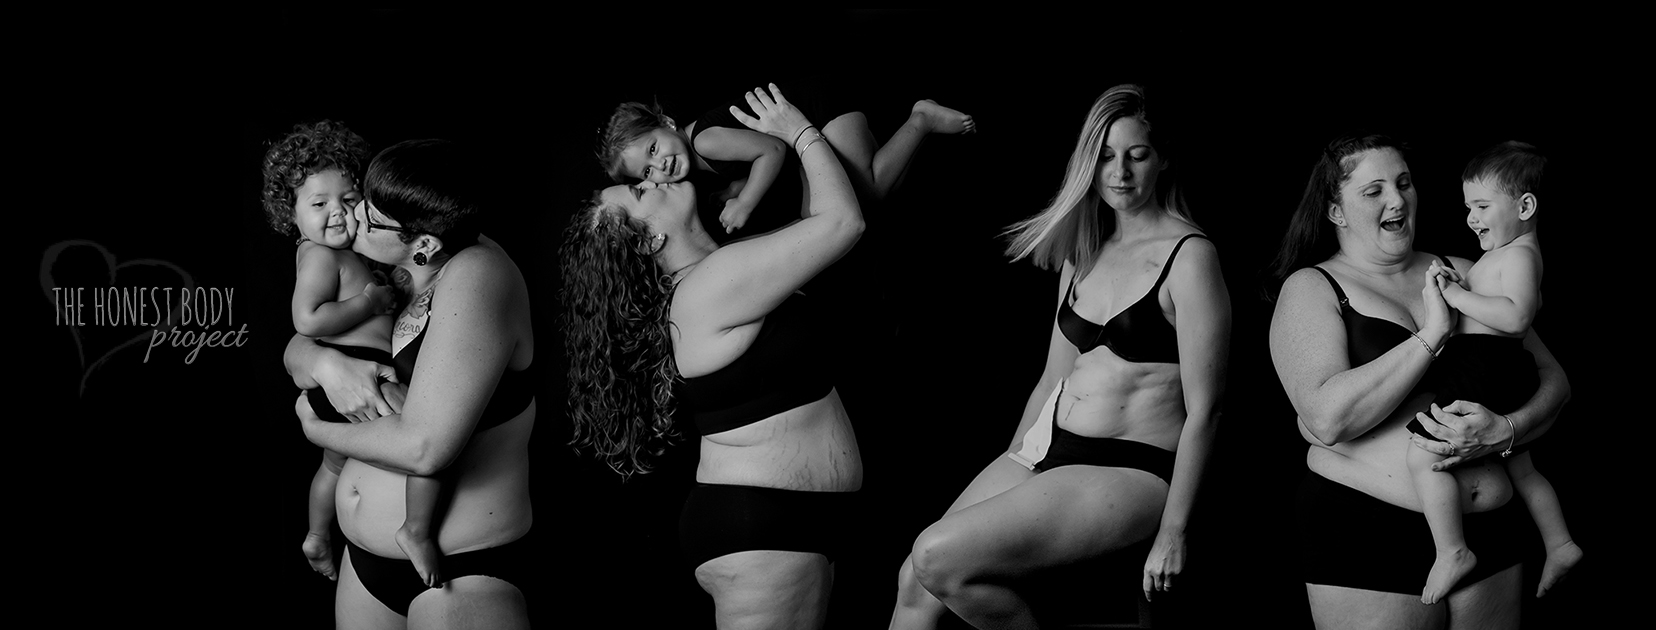 Fot. The Honest Body Project